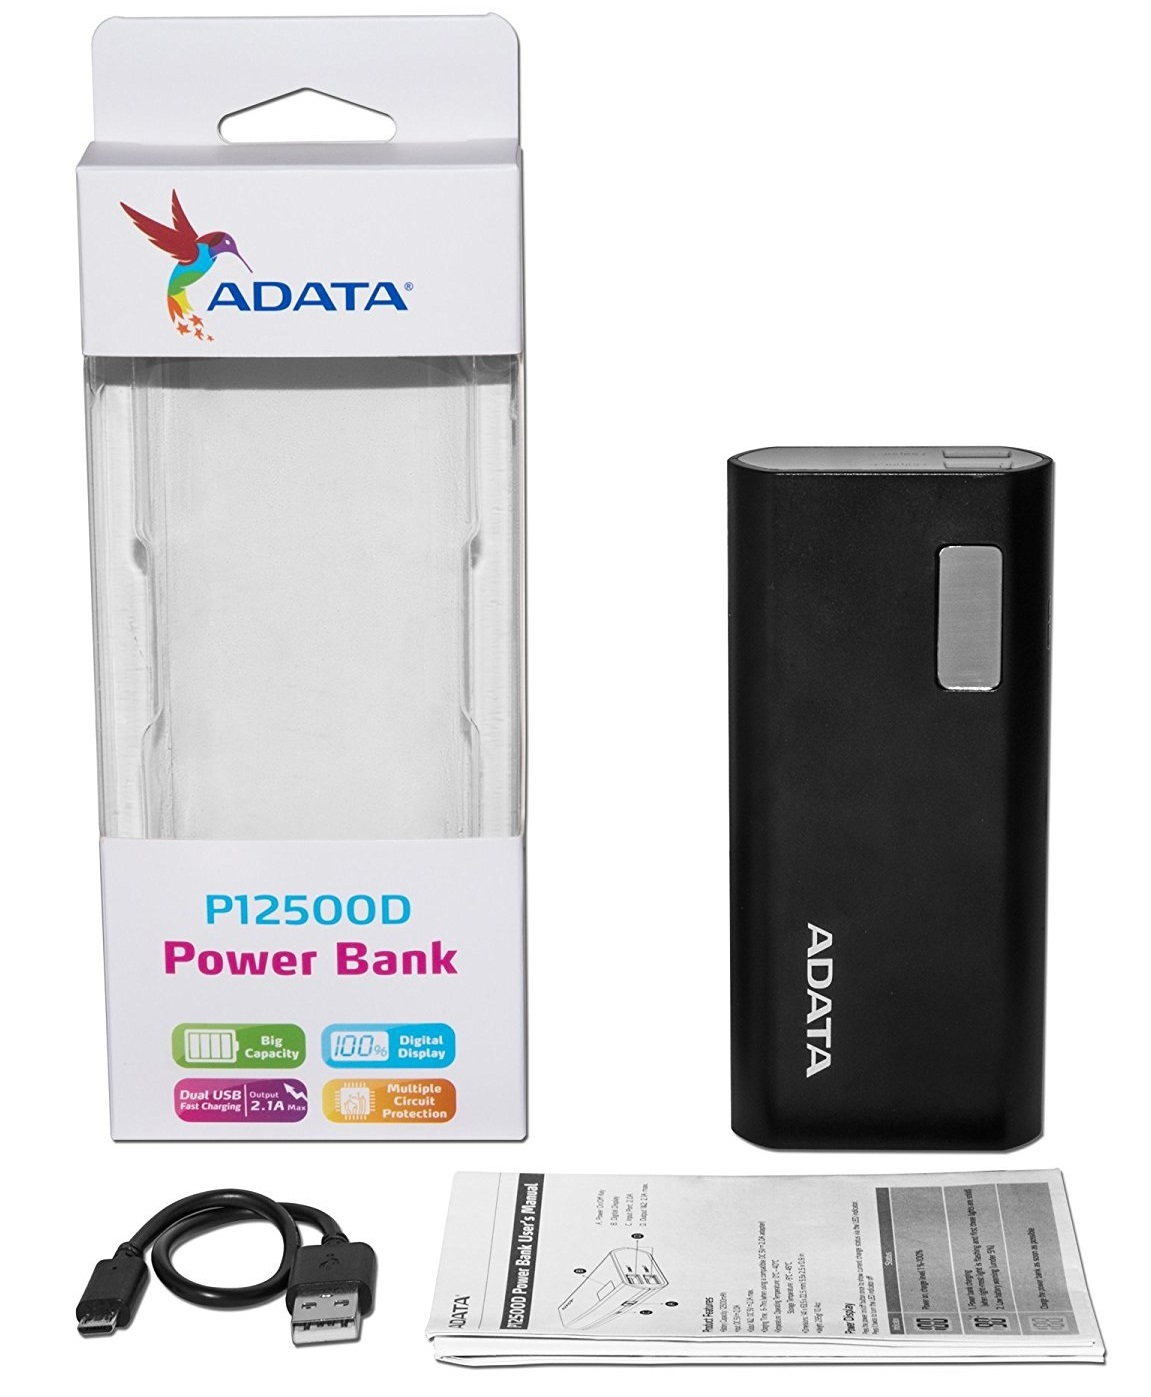 ADATA P12500D 12500mAh Power Bank image